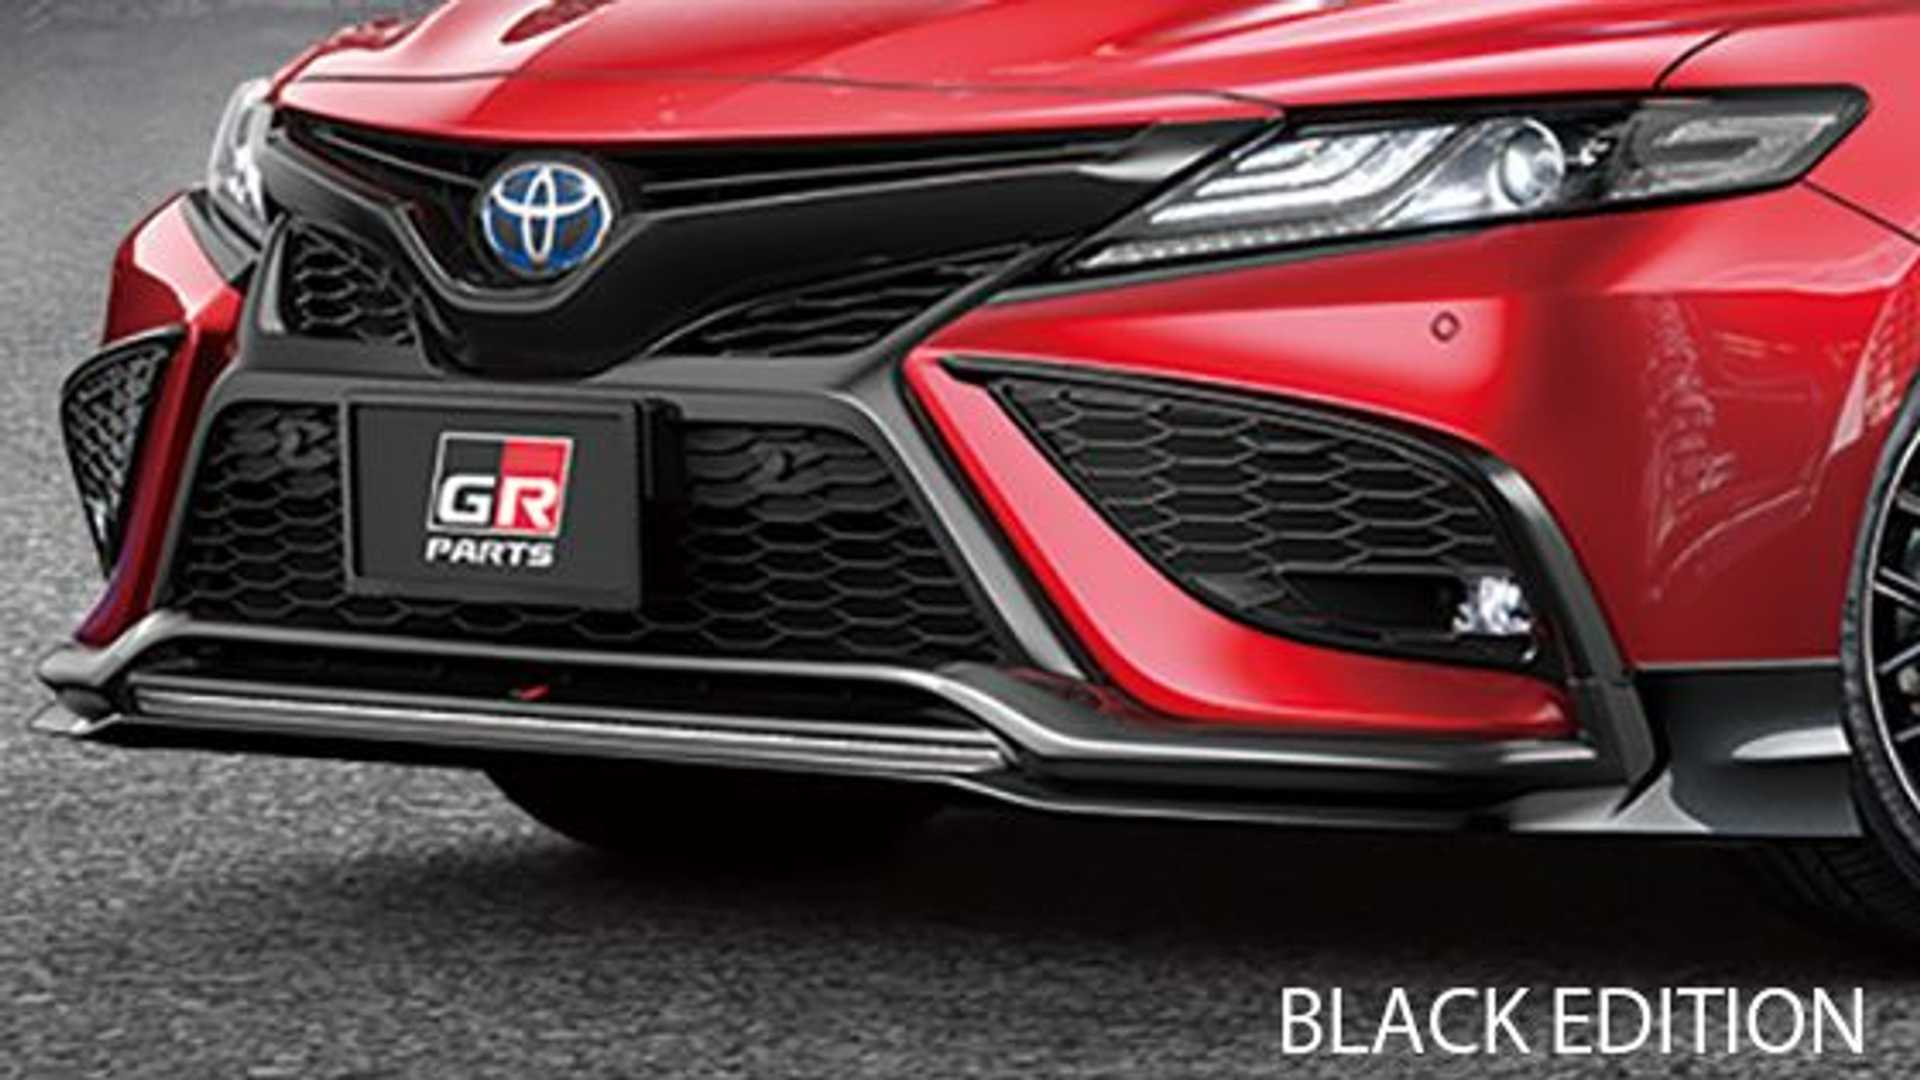 toyota-camry-gr-black-edition-front